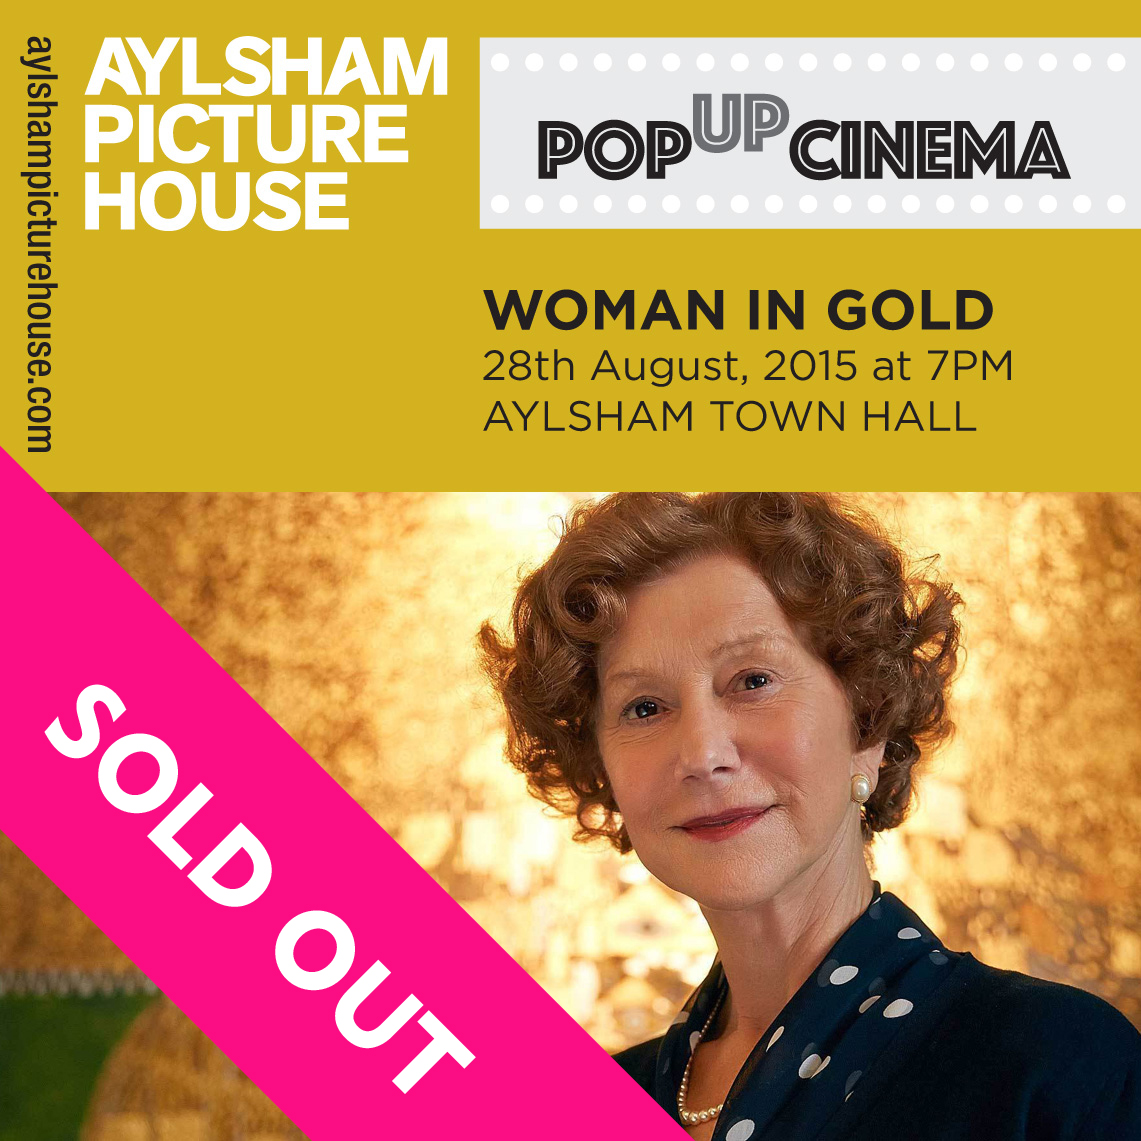 WOMAN IN GOLD – ALL TICKETS NOW SOLD